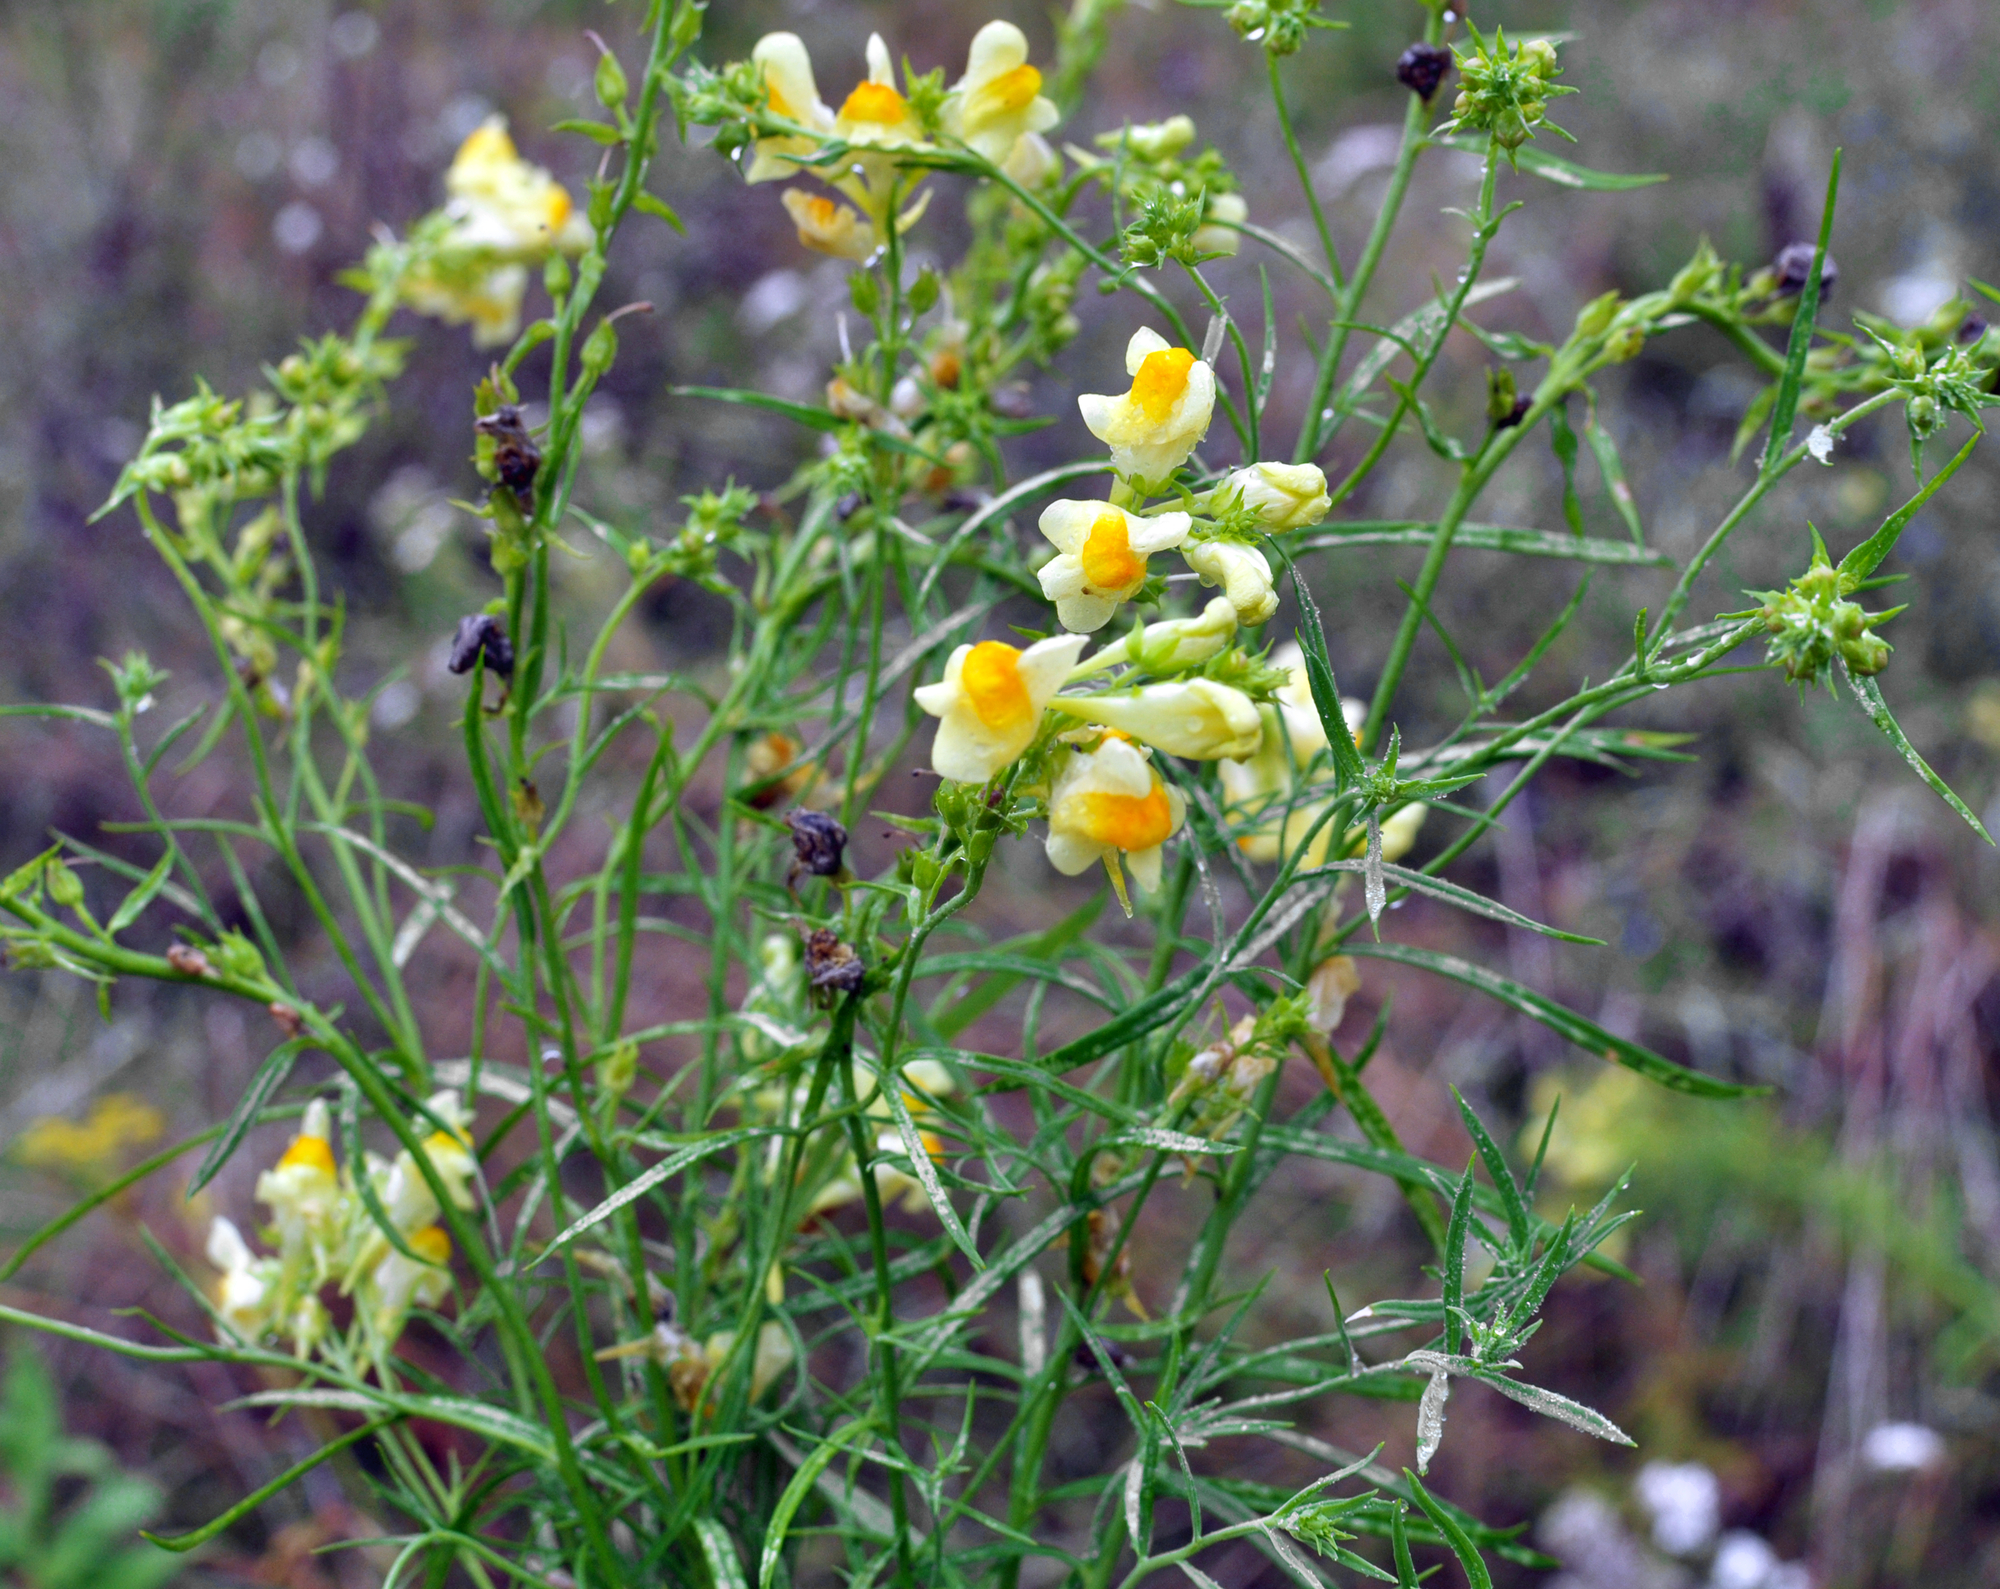 Linaria vulgaris blooms in the wild among grasses